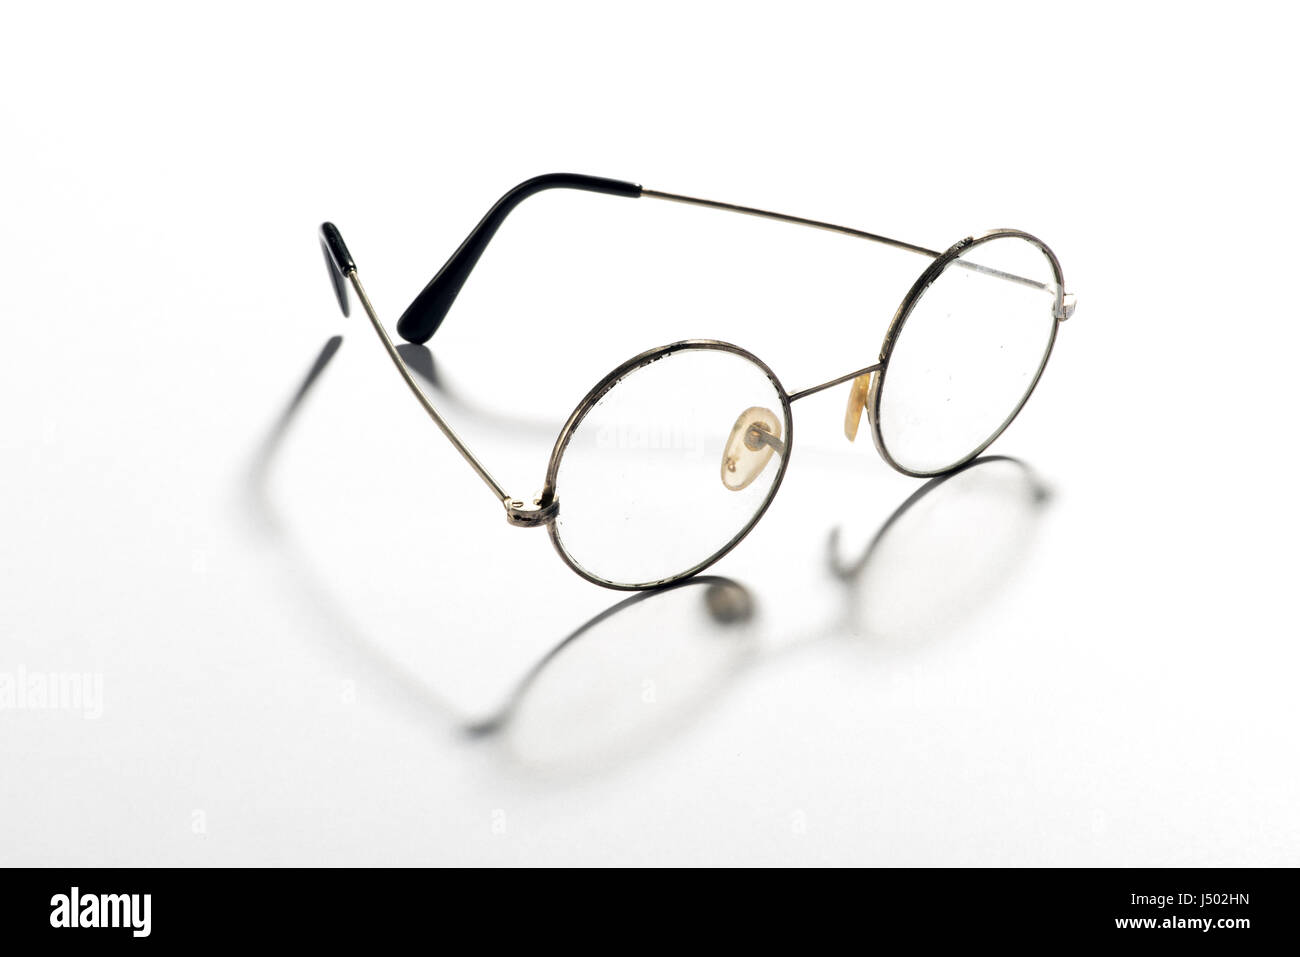 Pair of classic round vintage eyeglasses, glasses or spectacles with a thin wire frame displayed open throwing a - Stock Image